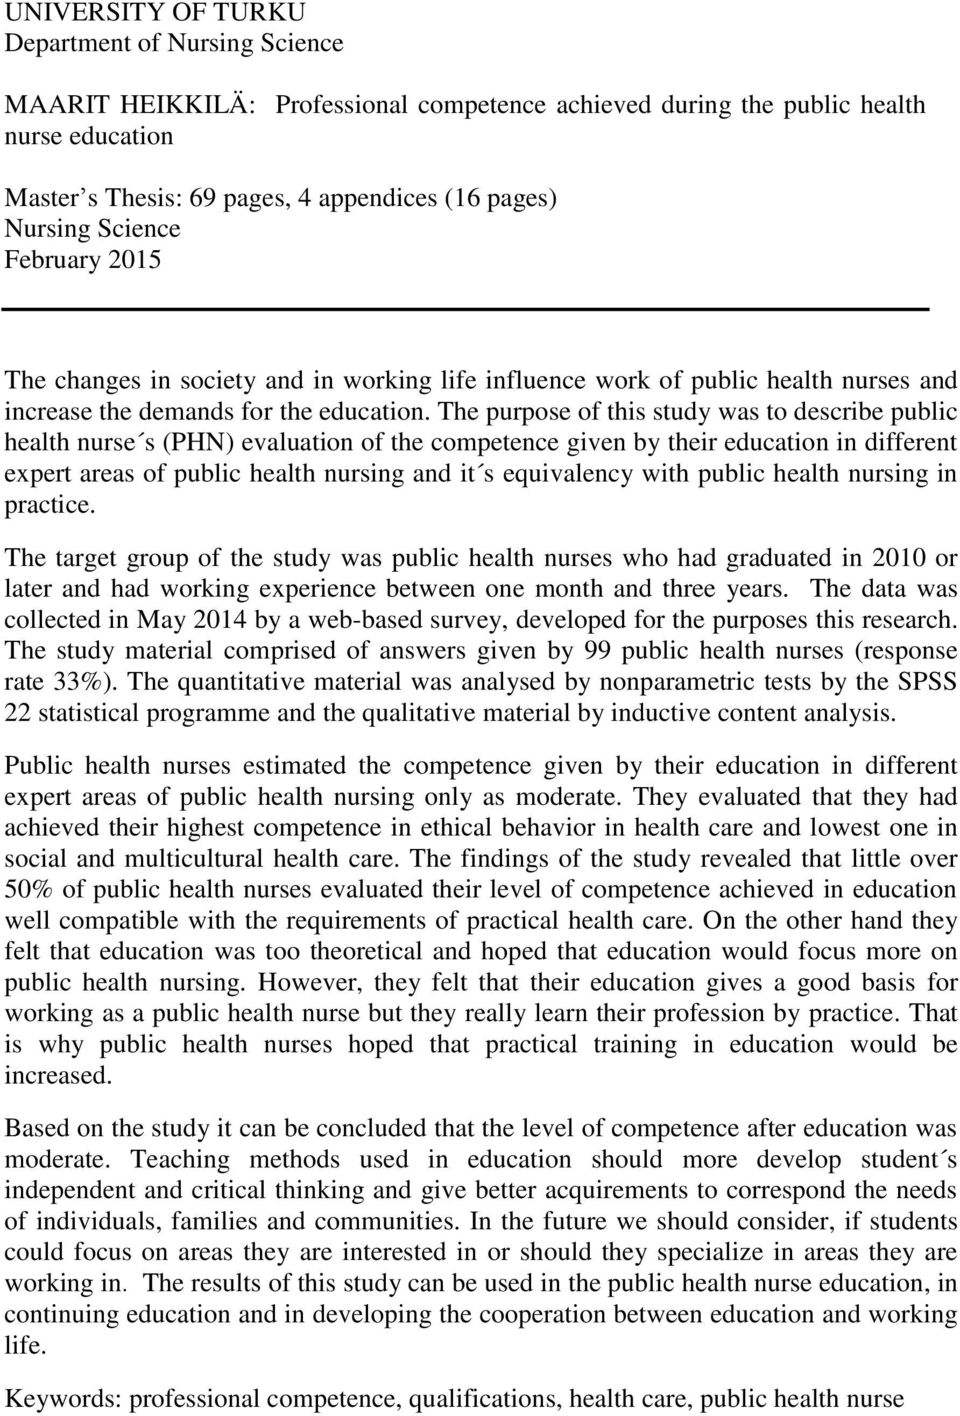 The purpose of this study was to describe public health urse s (PHN) evaluatio of the competece give by their educatio i differet expert areas of public health ursig ad it s equivalecy with public